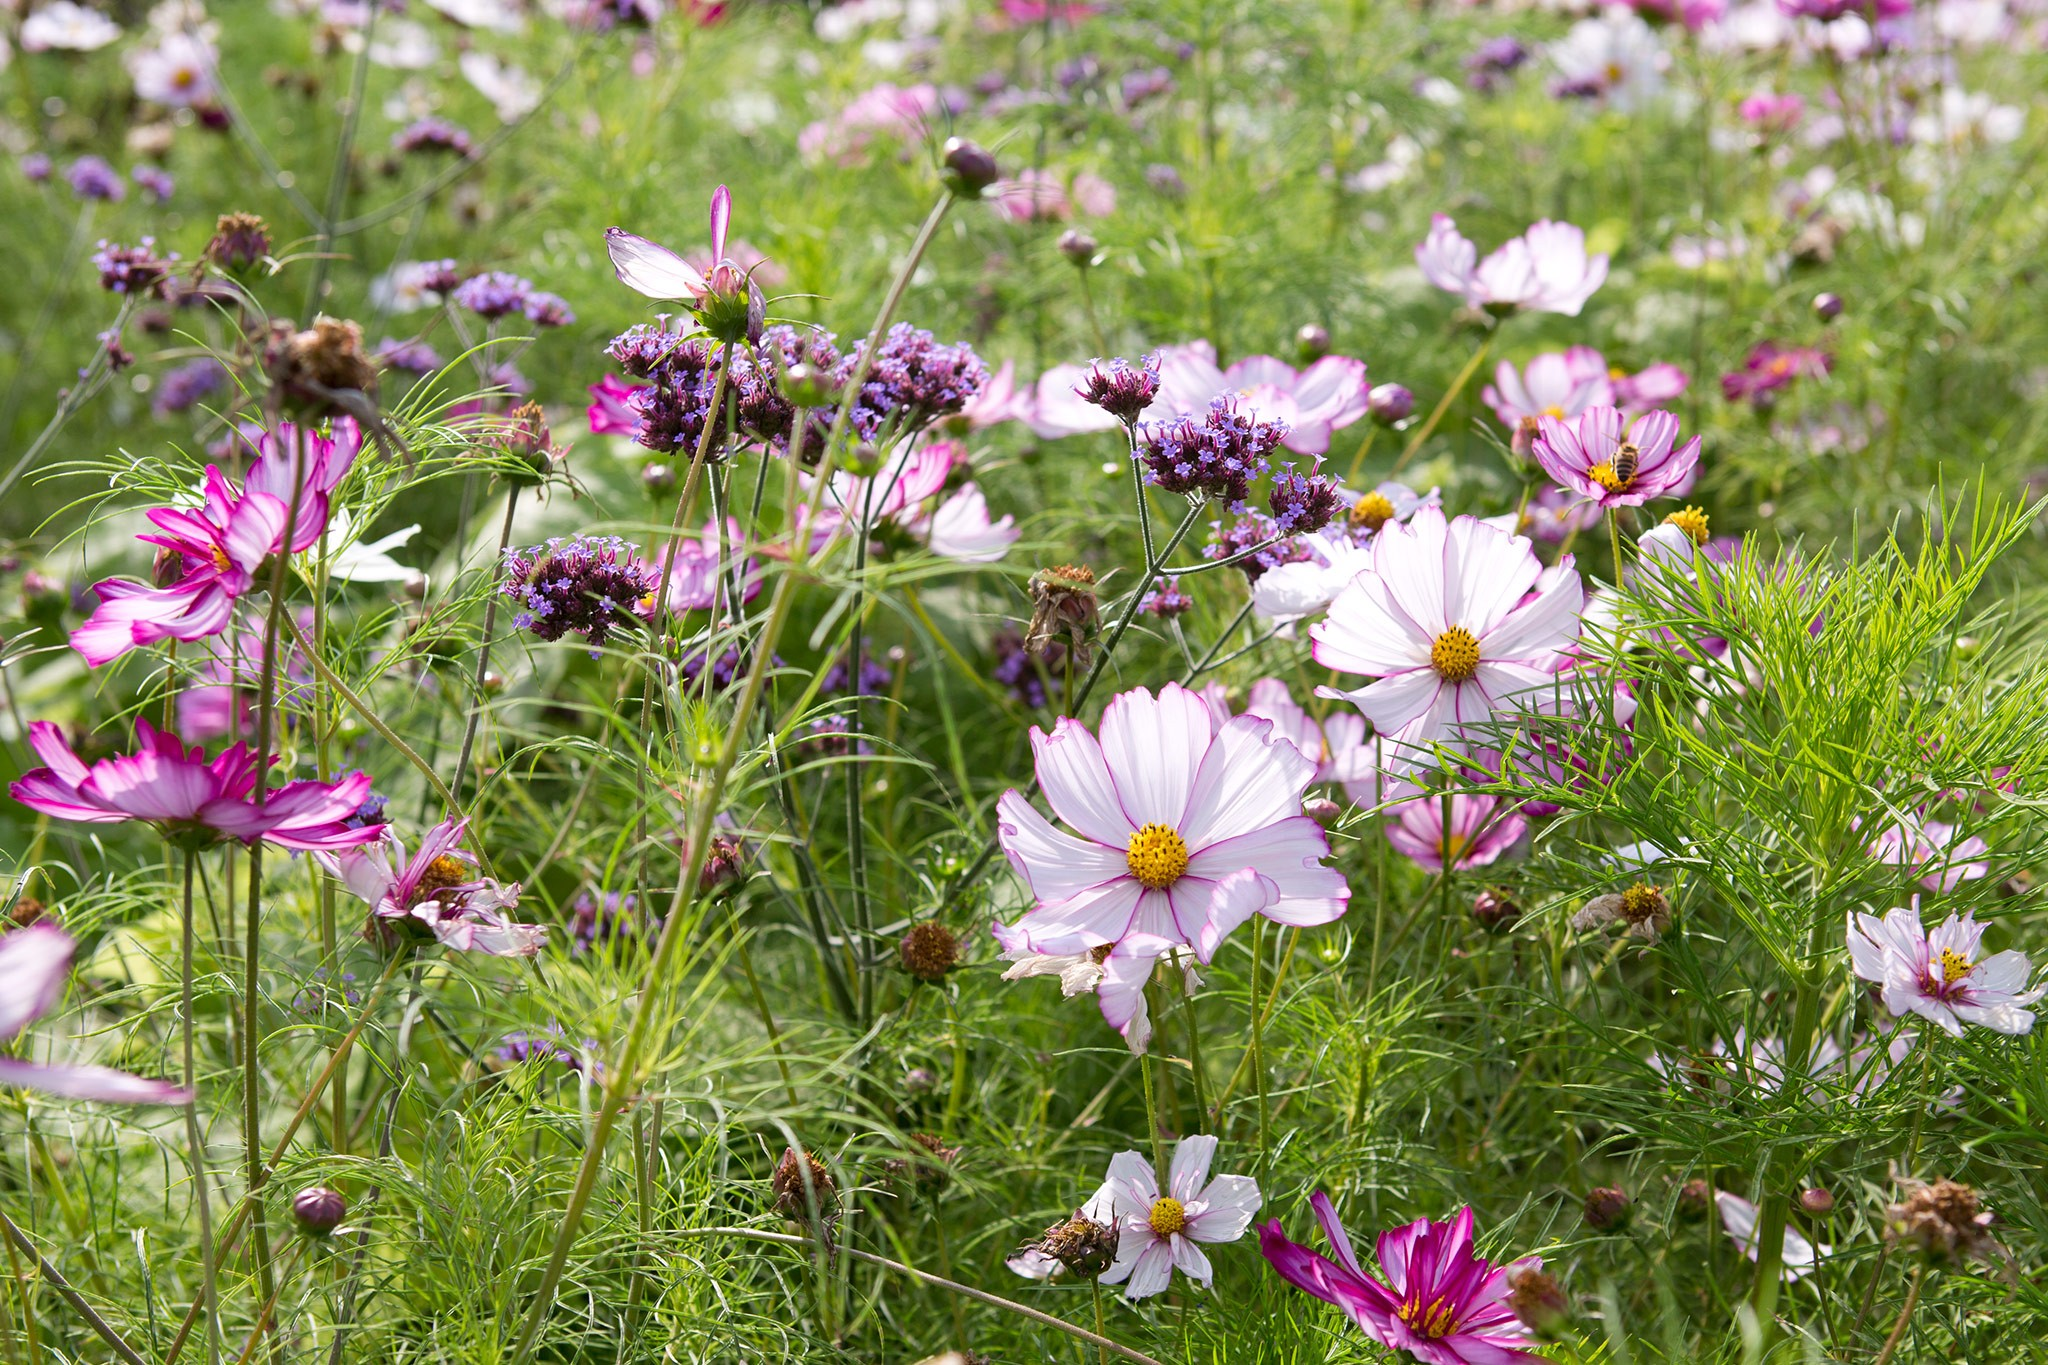 Meadow with cosmos